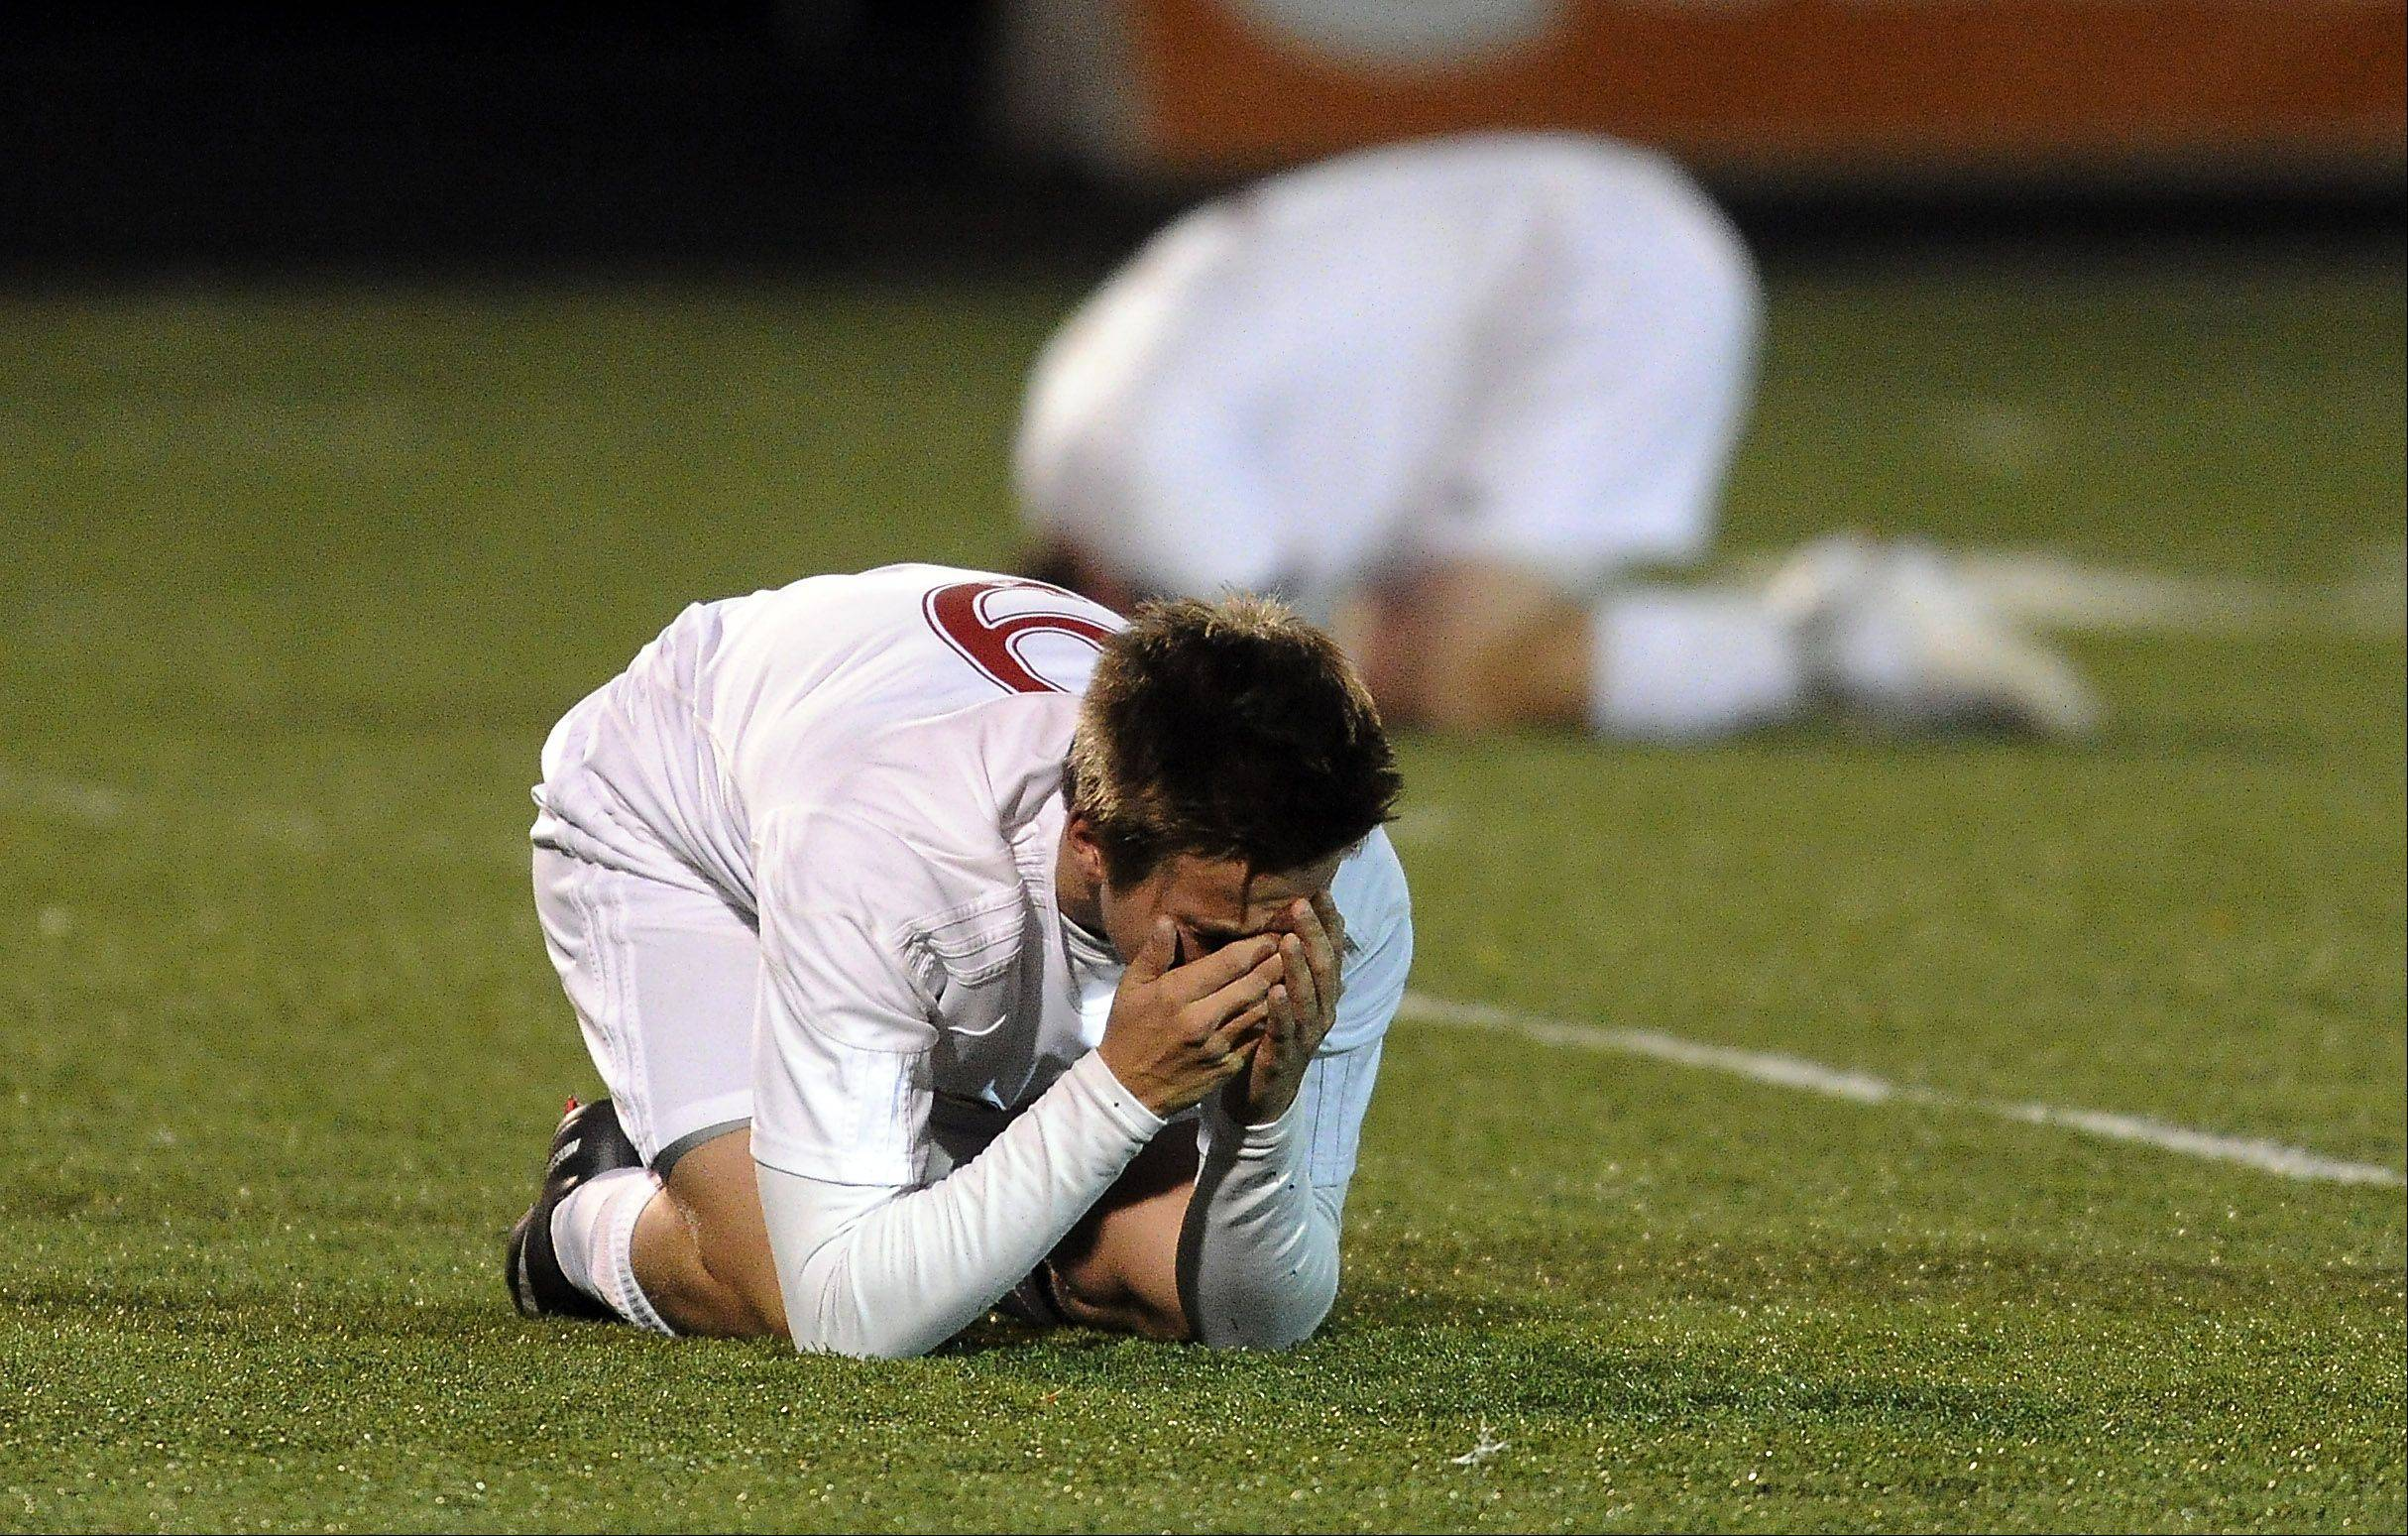 Naperville Central's Jordi Heeneman reacts after the game.